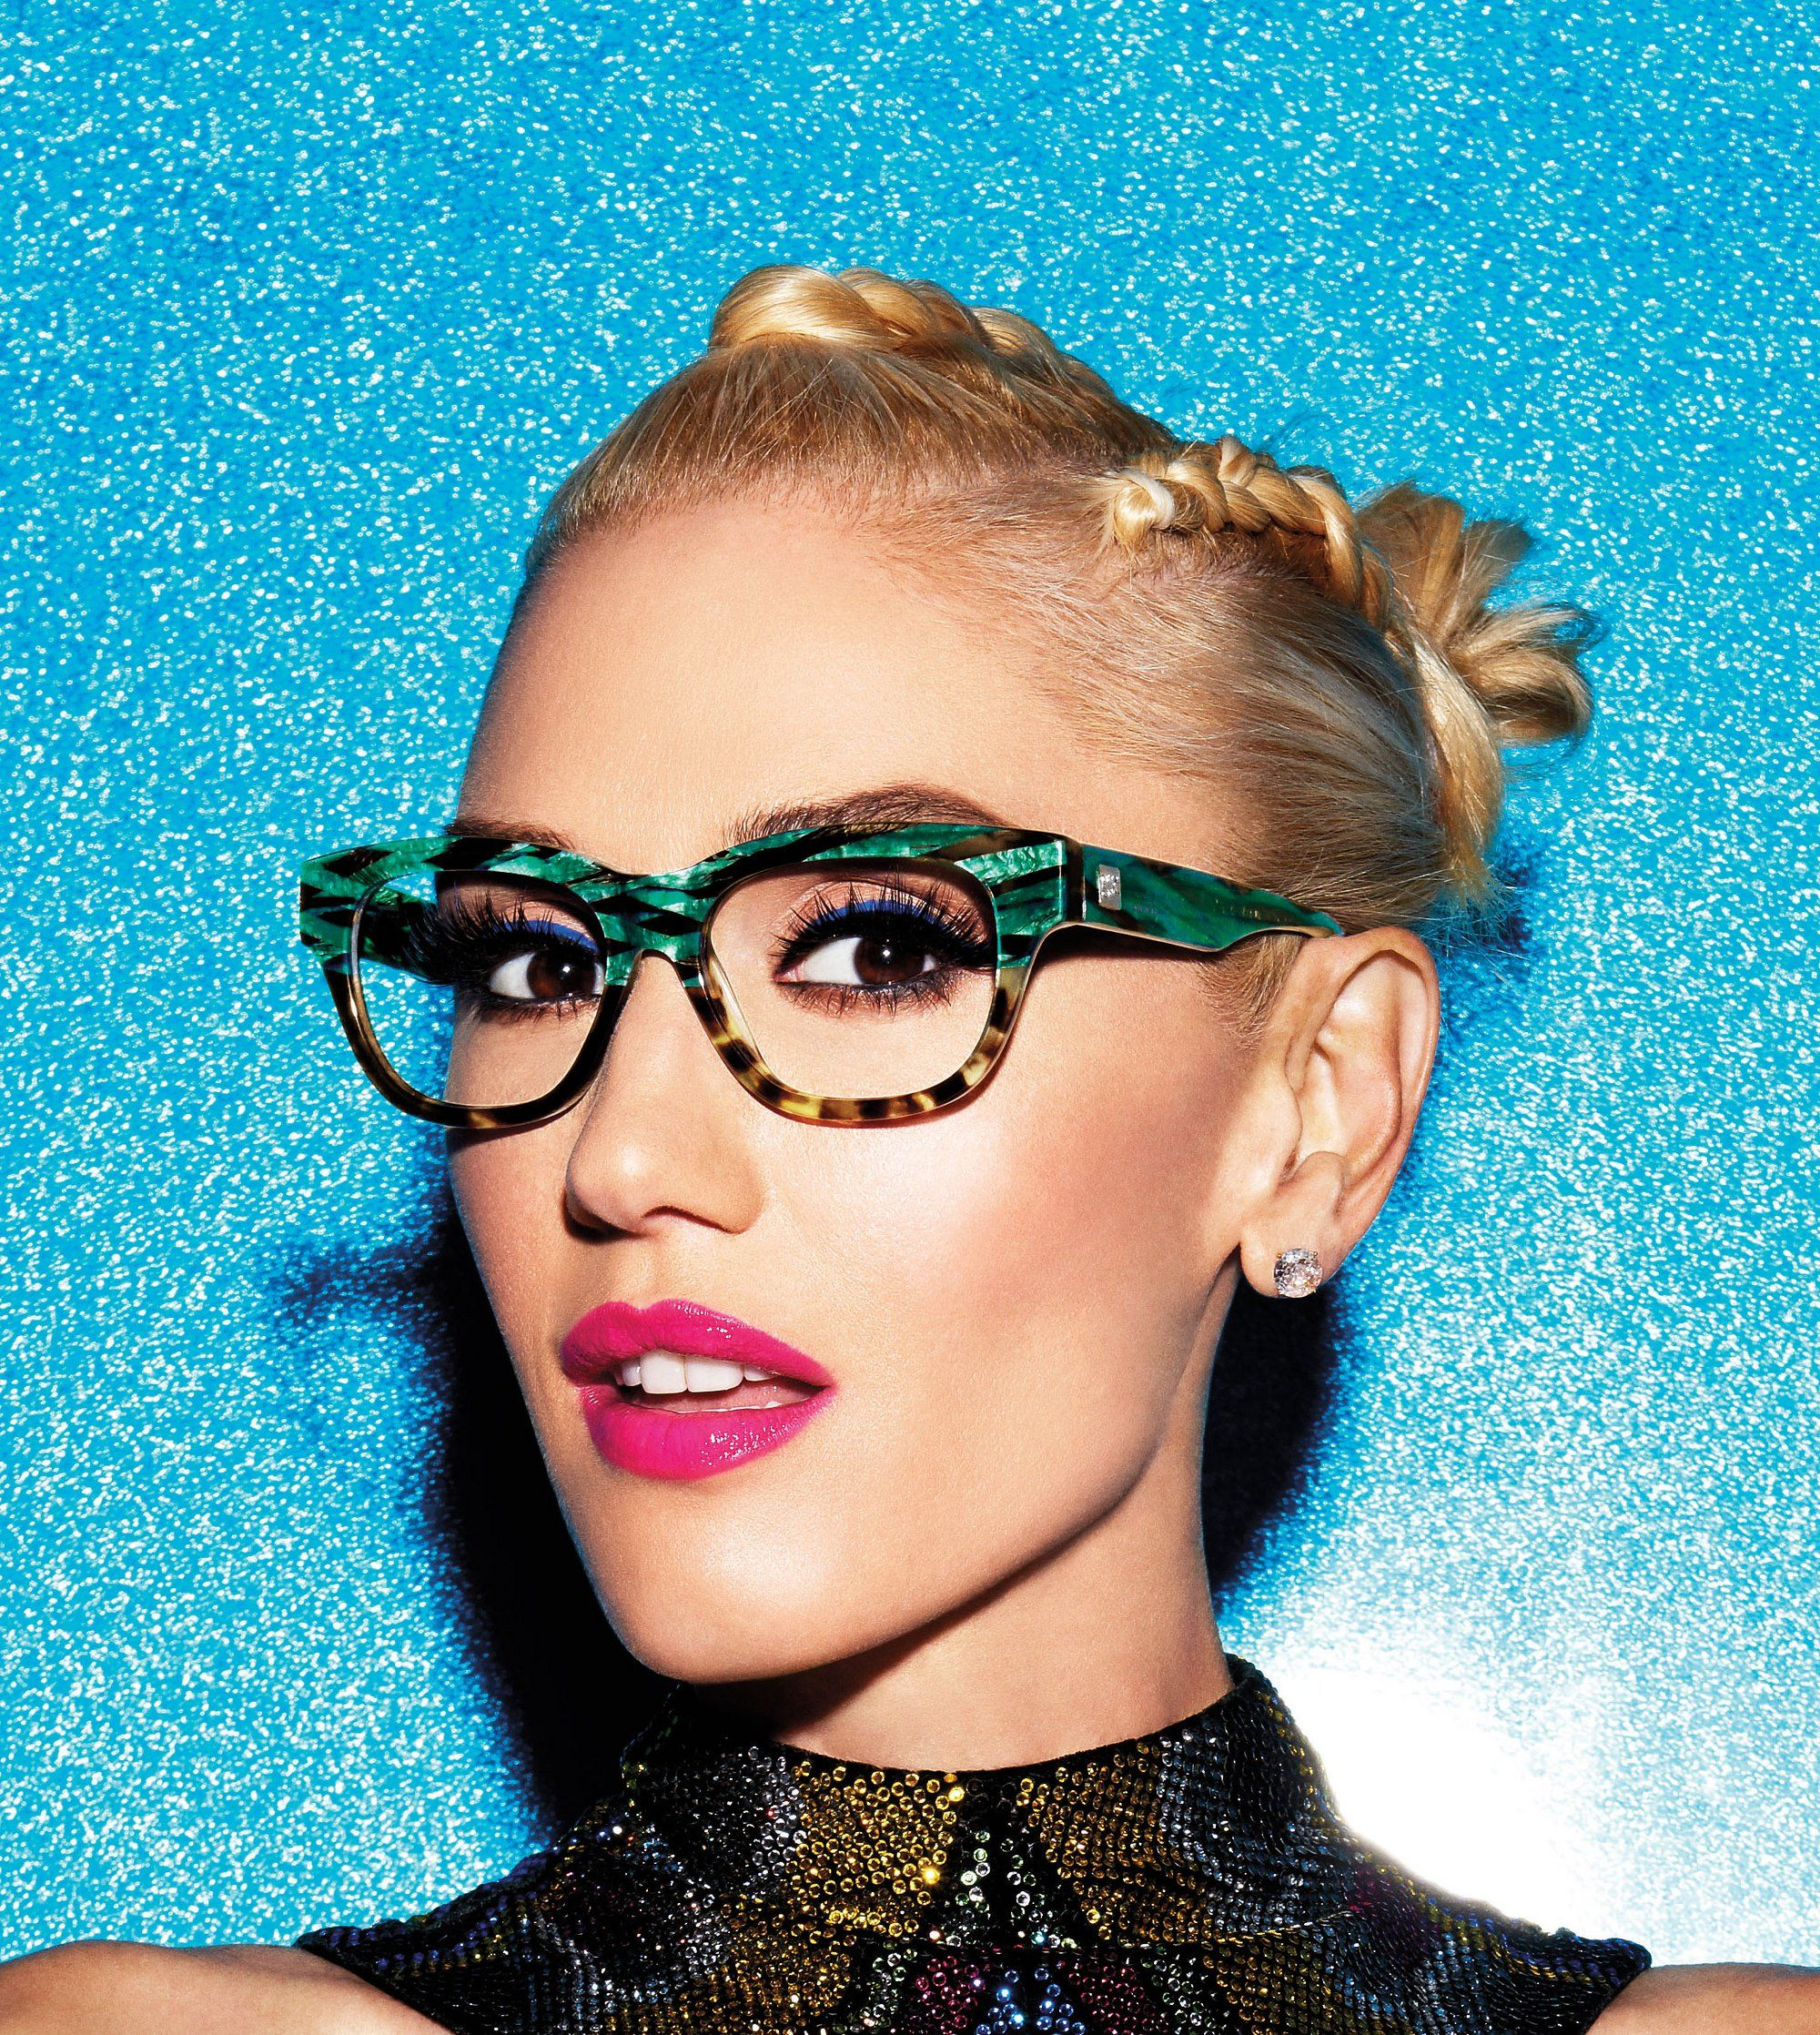 d84b0c8cda The ever-gorgeous Gwen Stefani in her new GX By Gwen Stefani frames.